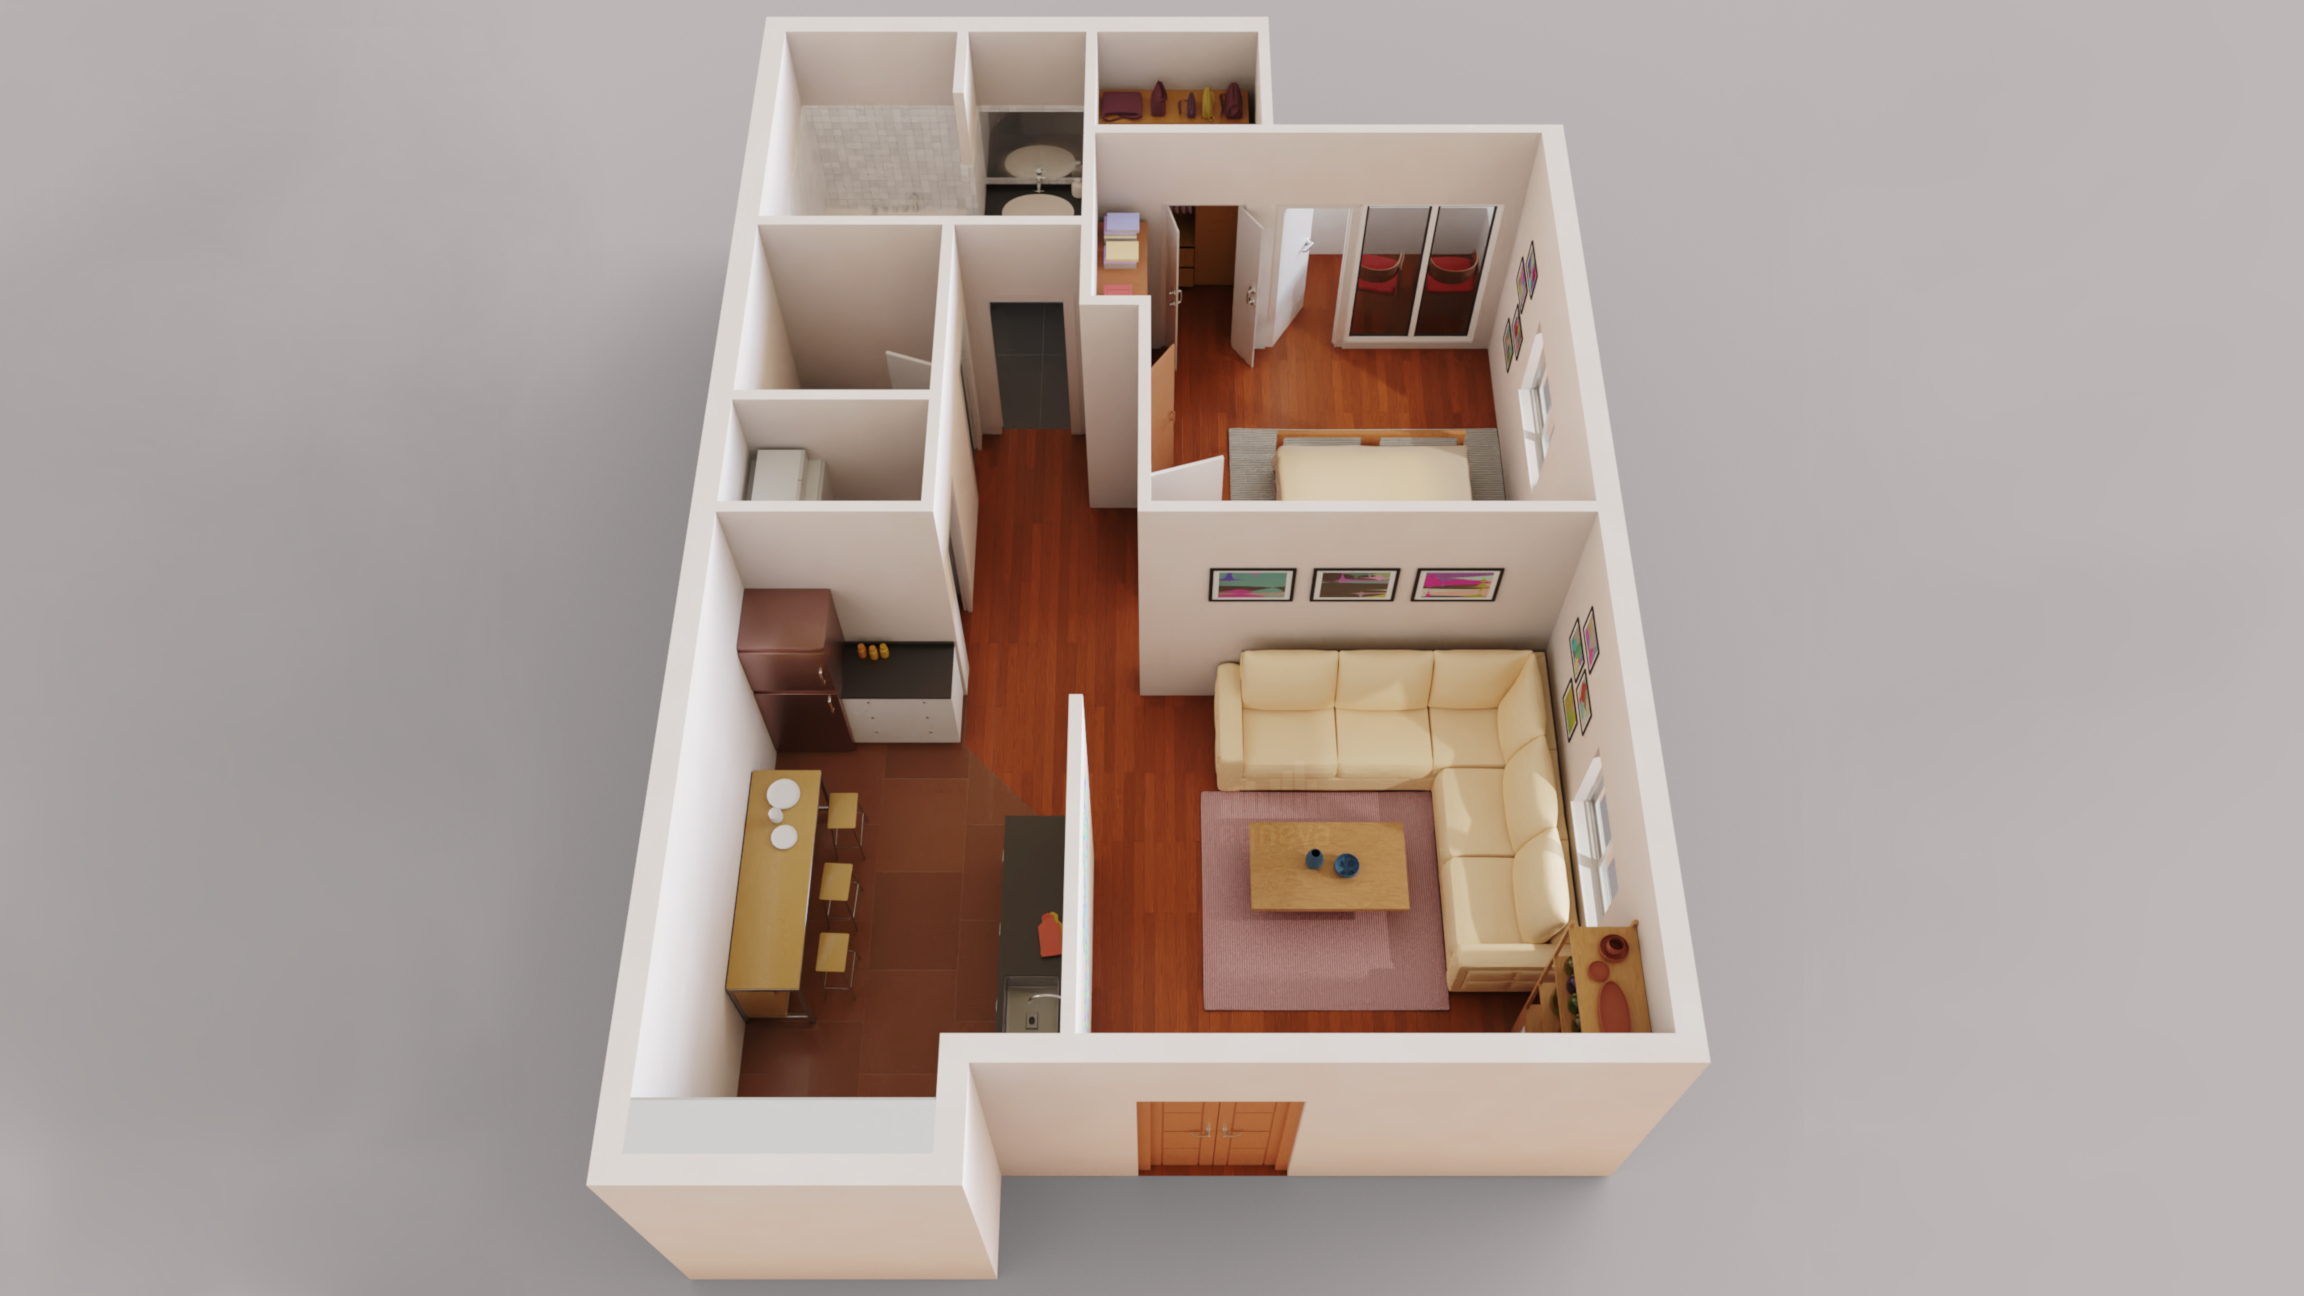 3d Floor Plan One Bedroom Apartment Finished Projects Blender Artists Community